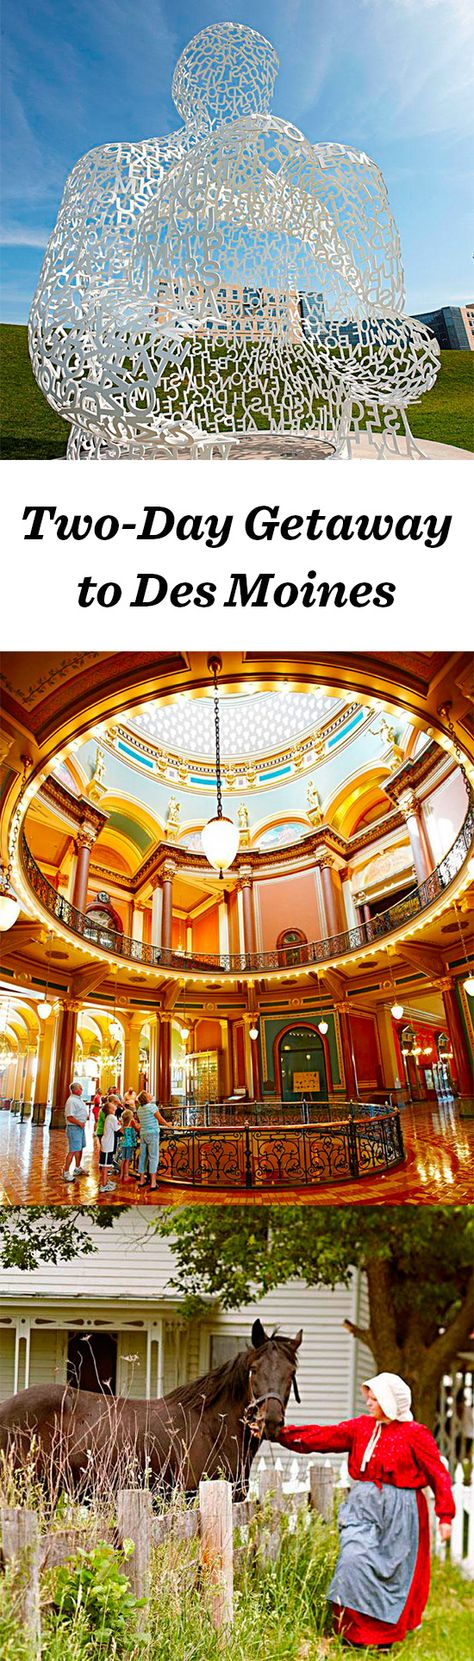 Iowa's capital city, Des Moines has evolved into a sophisticated weekend destination with reasonable prices. Parks and trails round out boutique shops and independent restaurants: http://www.midwestliving.com/travel/iowa/des-moines/two-day-getaway-to-des-moines/ #desmoines #iowa #travel